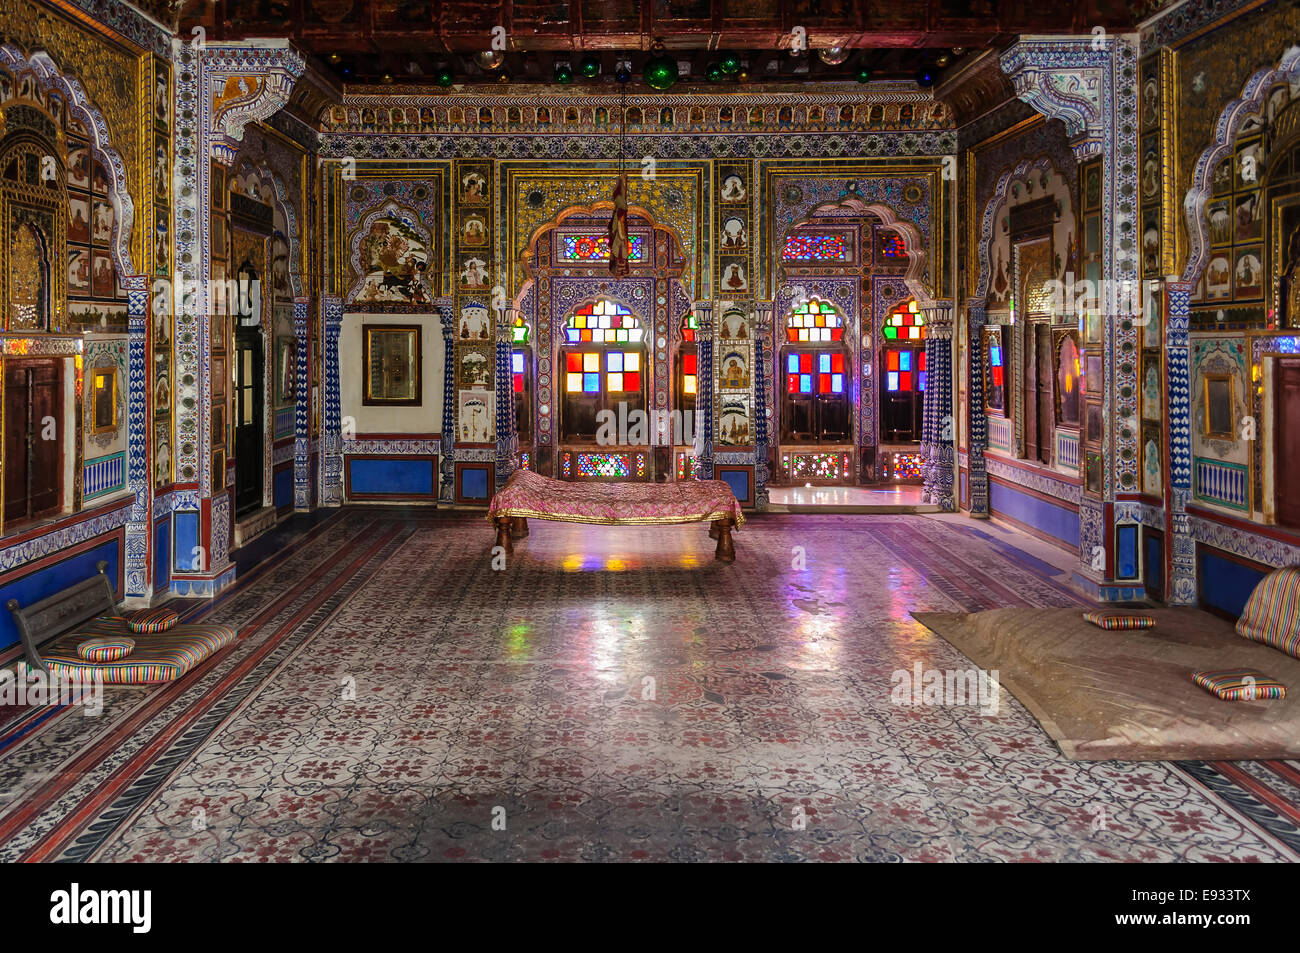 Throne room and Royal court of Marwar King, Mehrangarh fort, Rajasthan, India - Stock Image